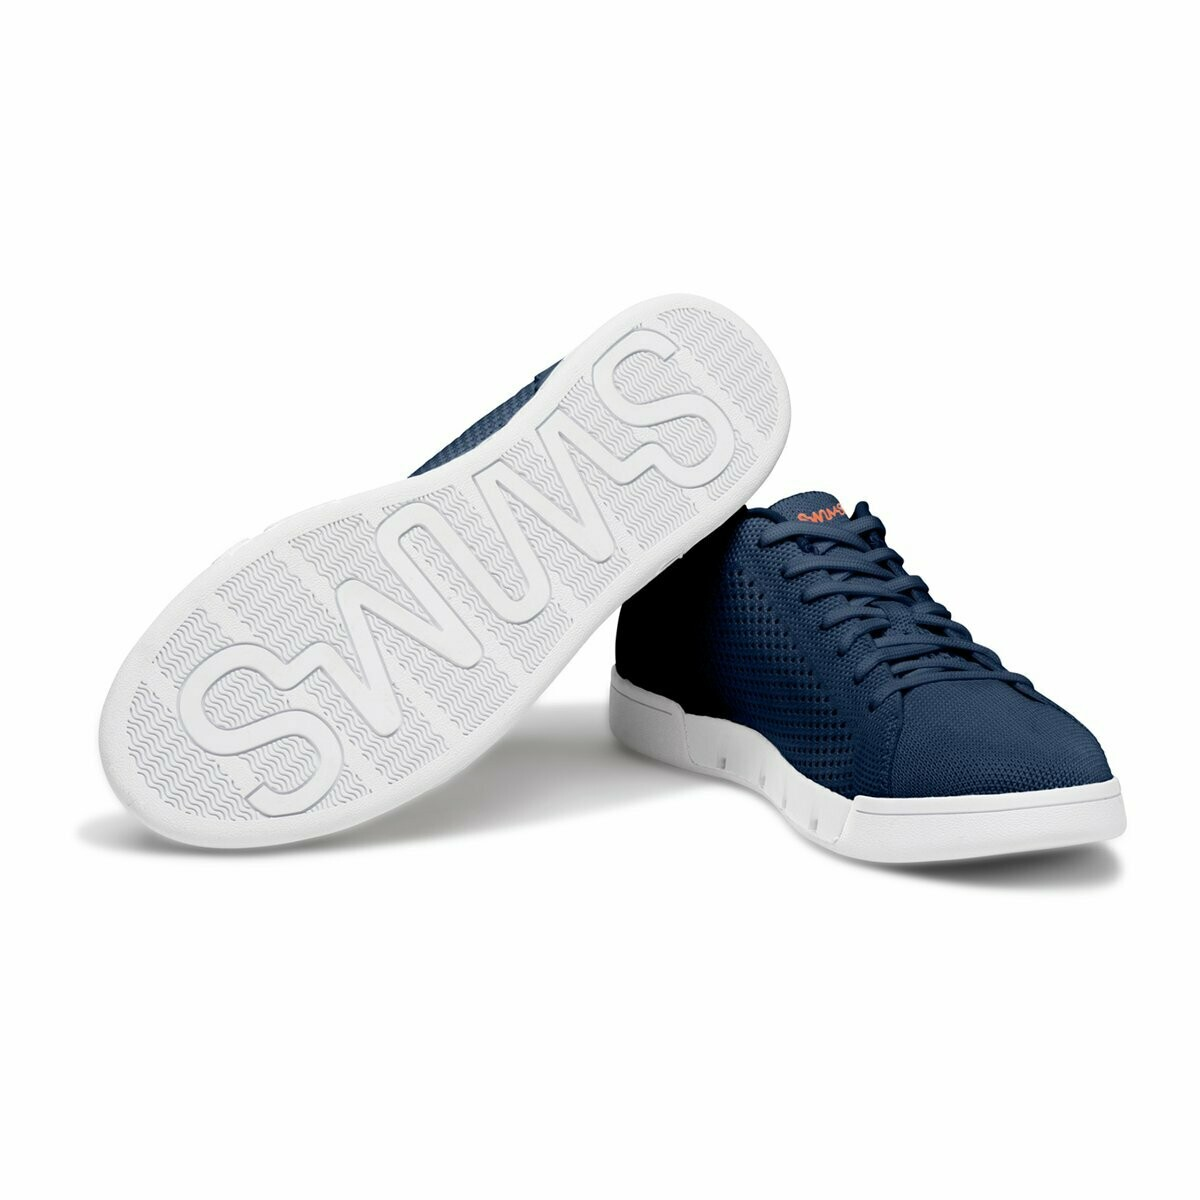 Swims Breeze Tennis Knit